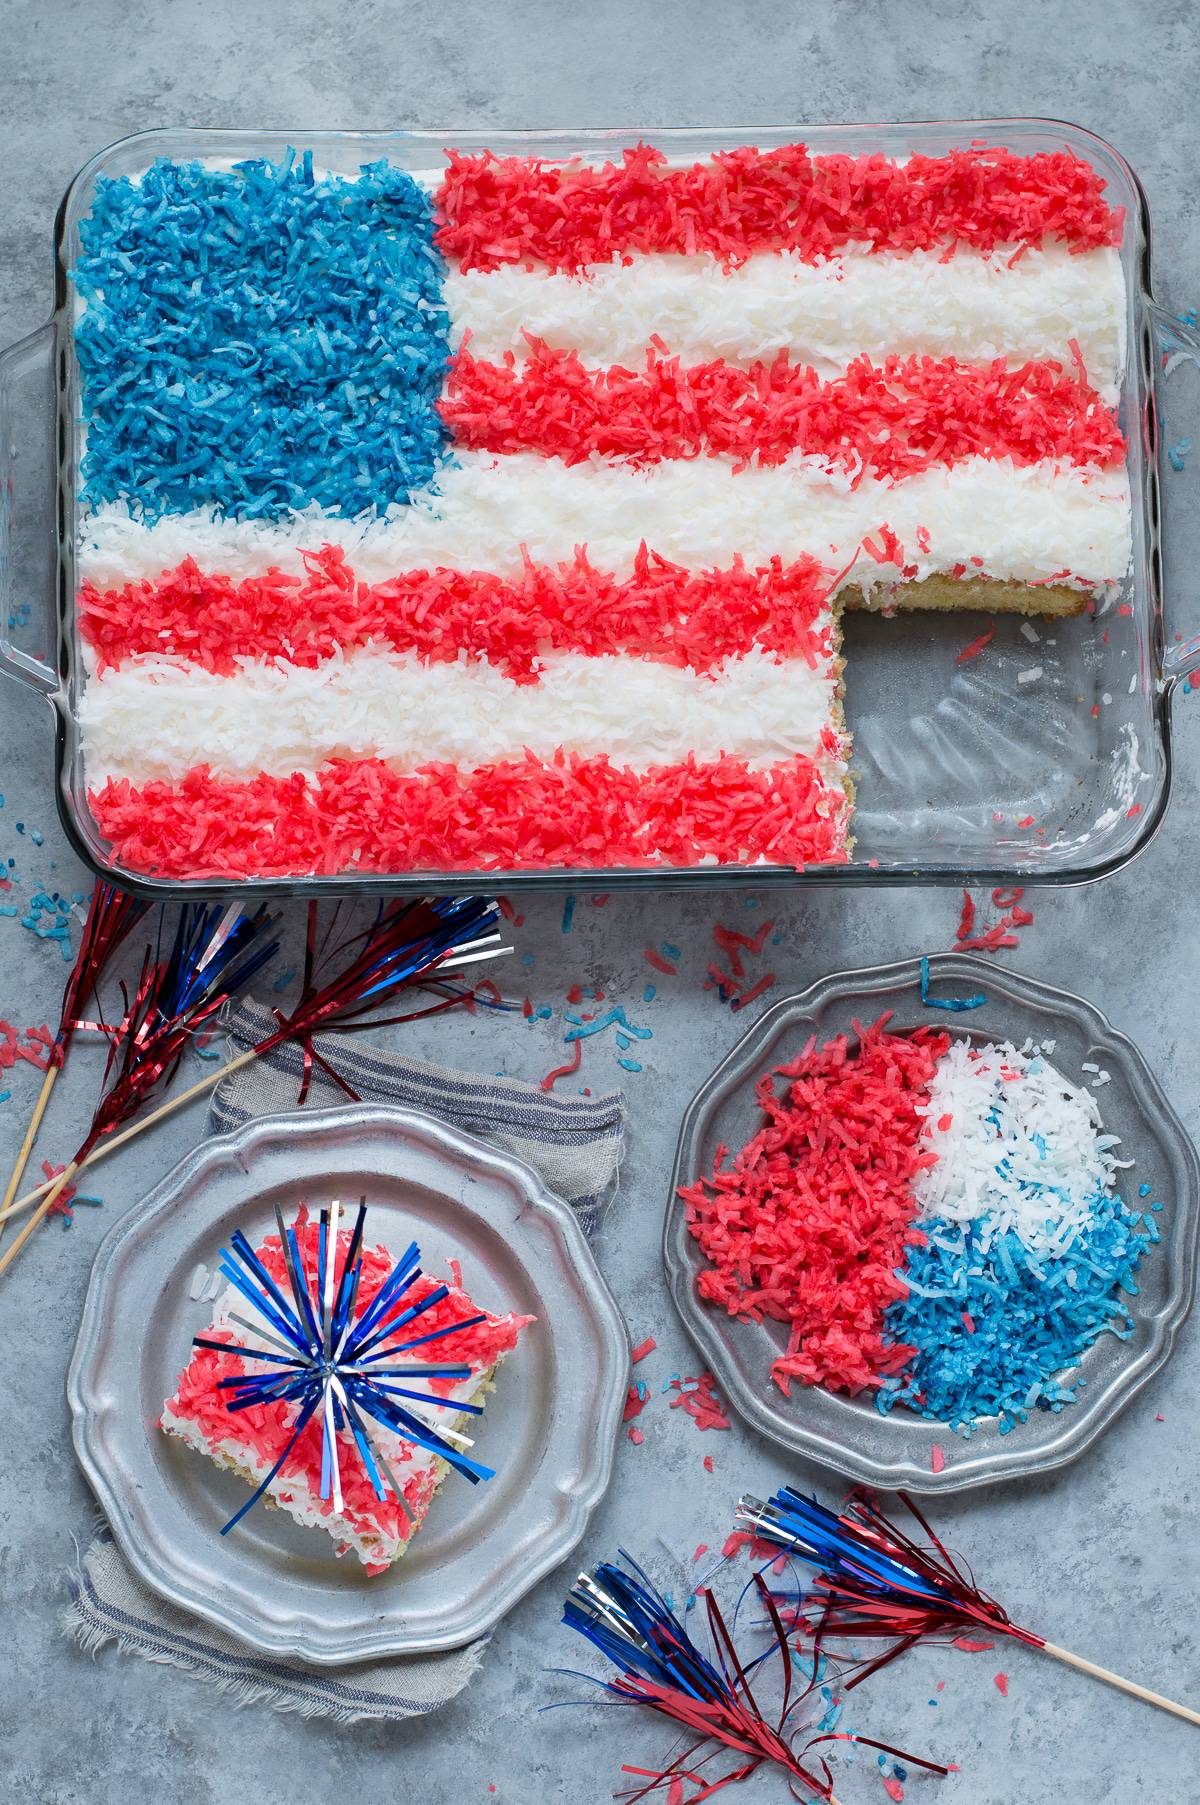 Easy 4th of July cake recipe - American Flag shredded coconut cake!